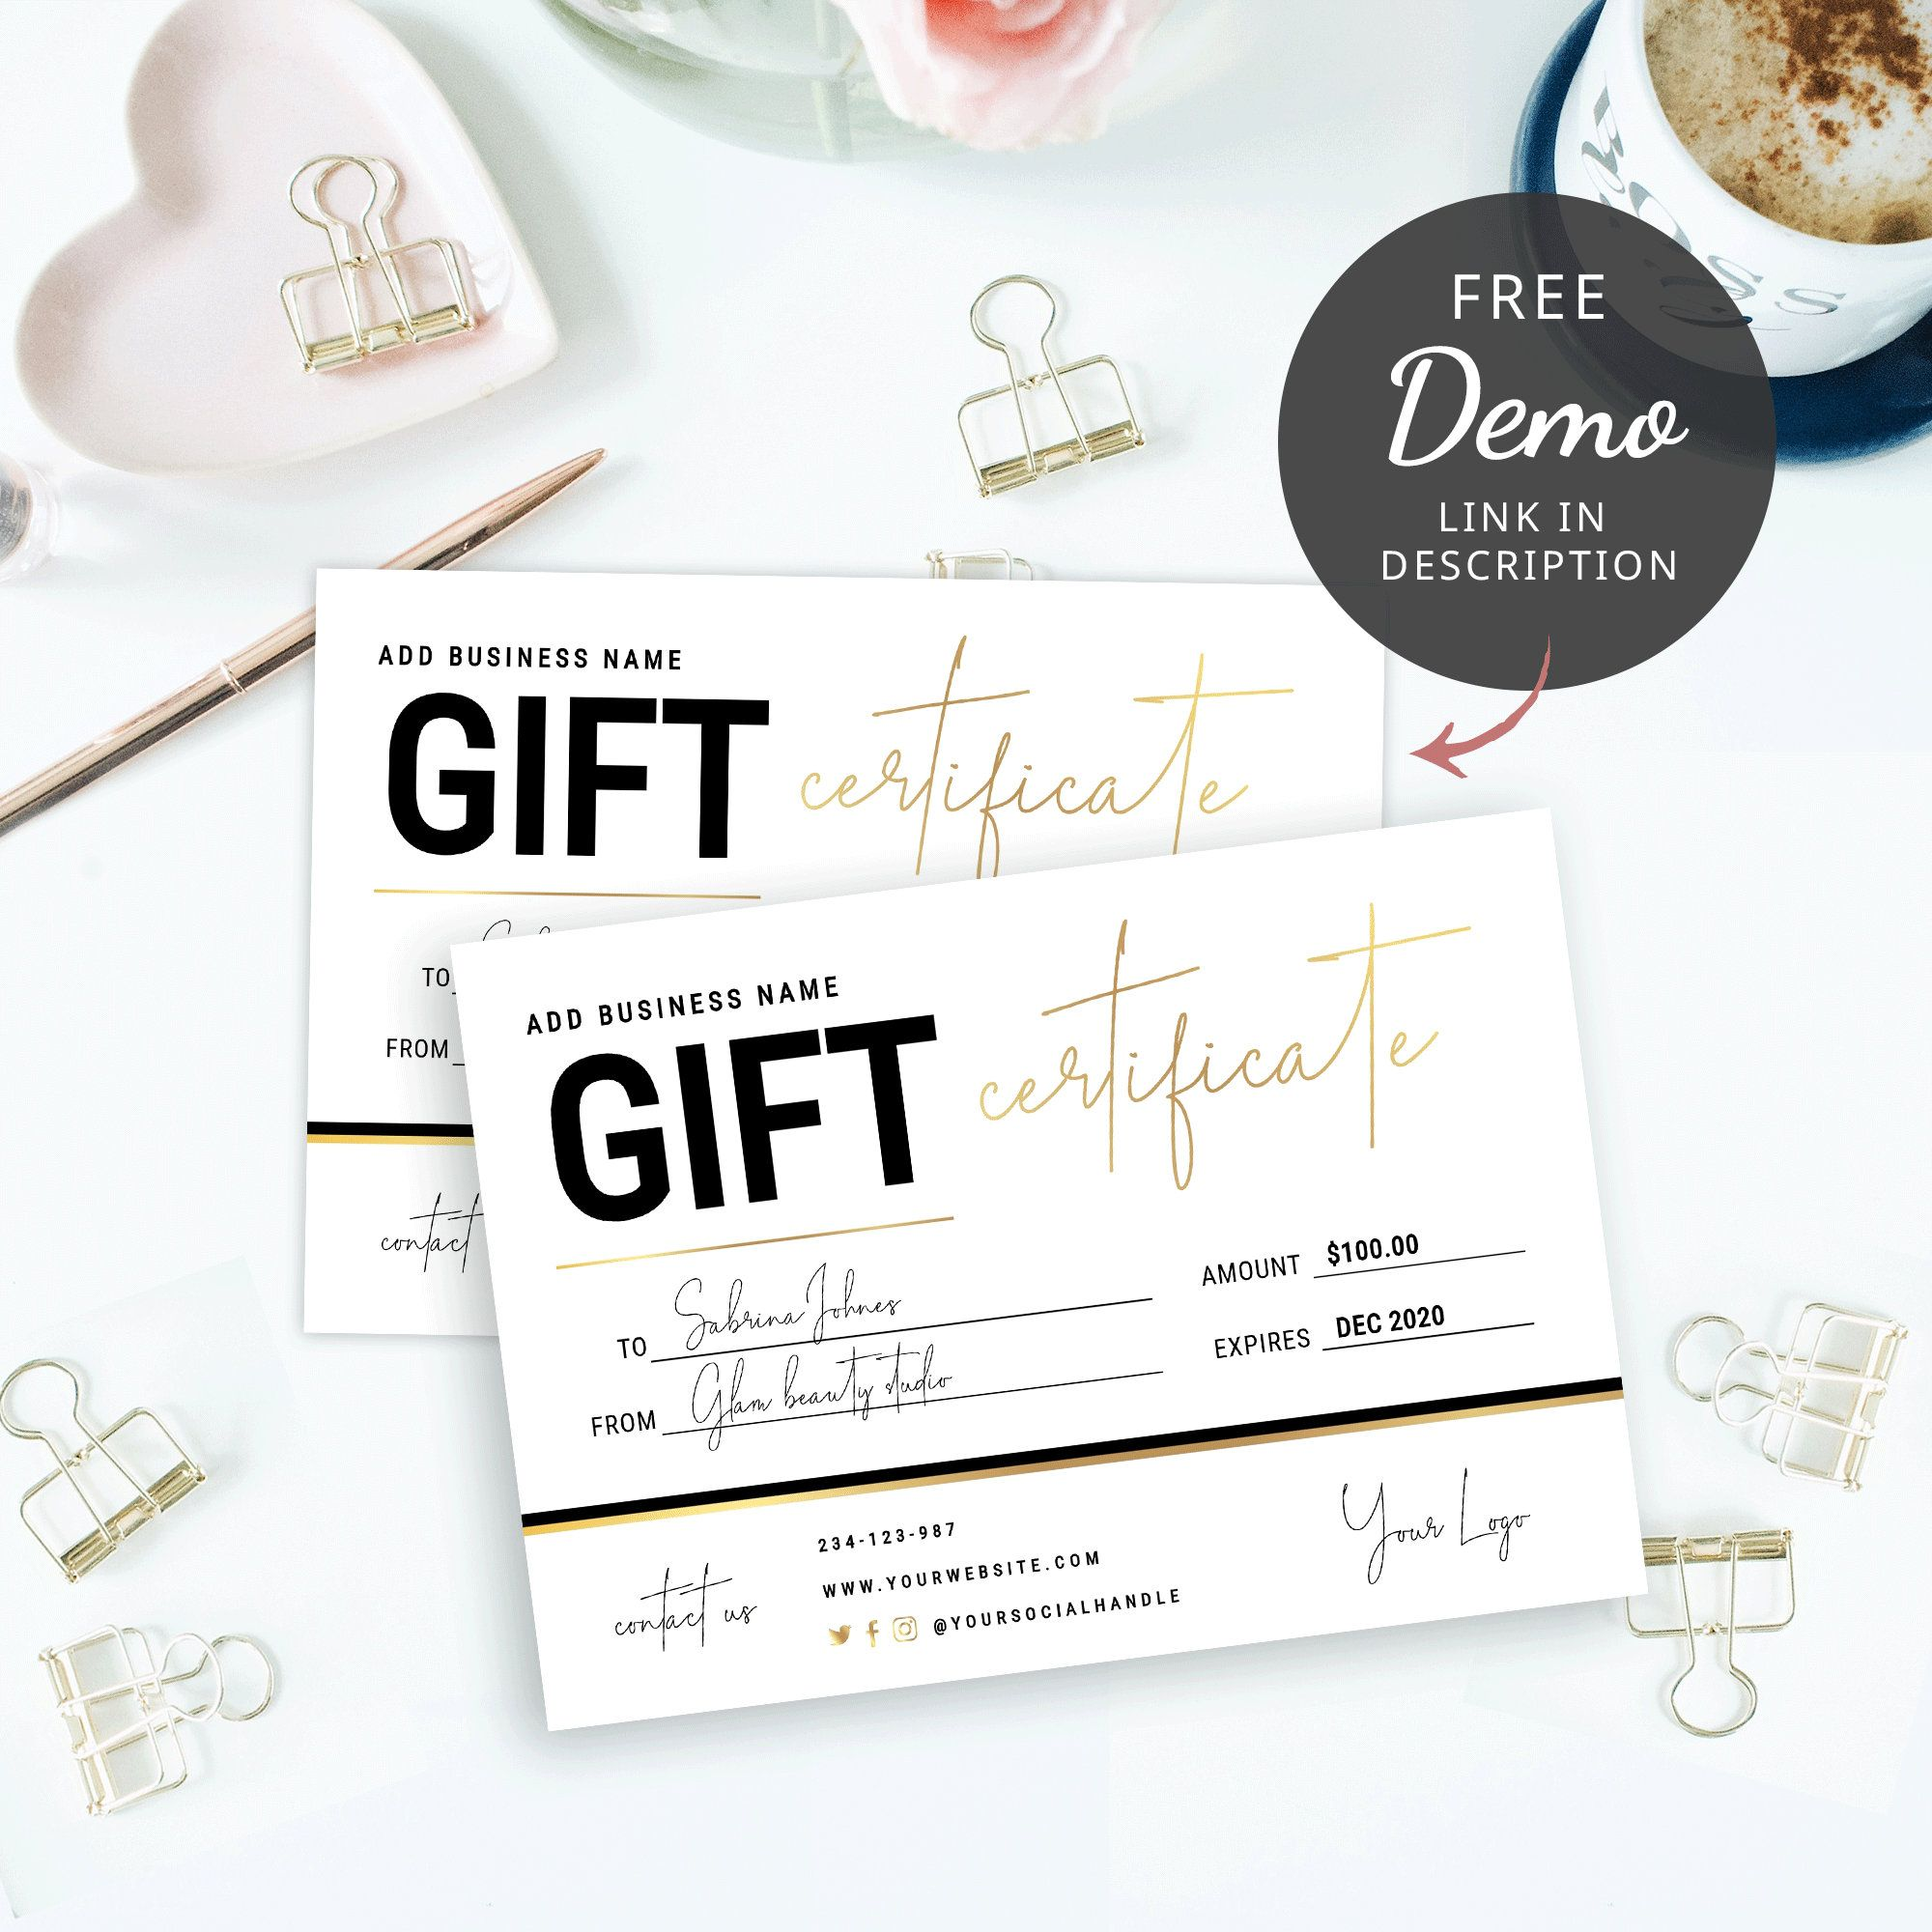 Editable Gift Certificate Template Printable Gift Vouchers Etsy In 2021 Photography Gift Certificate Template Gift Certificate Template Gift Card Template